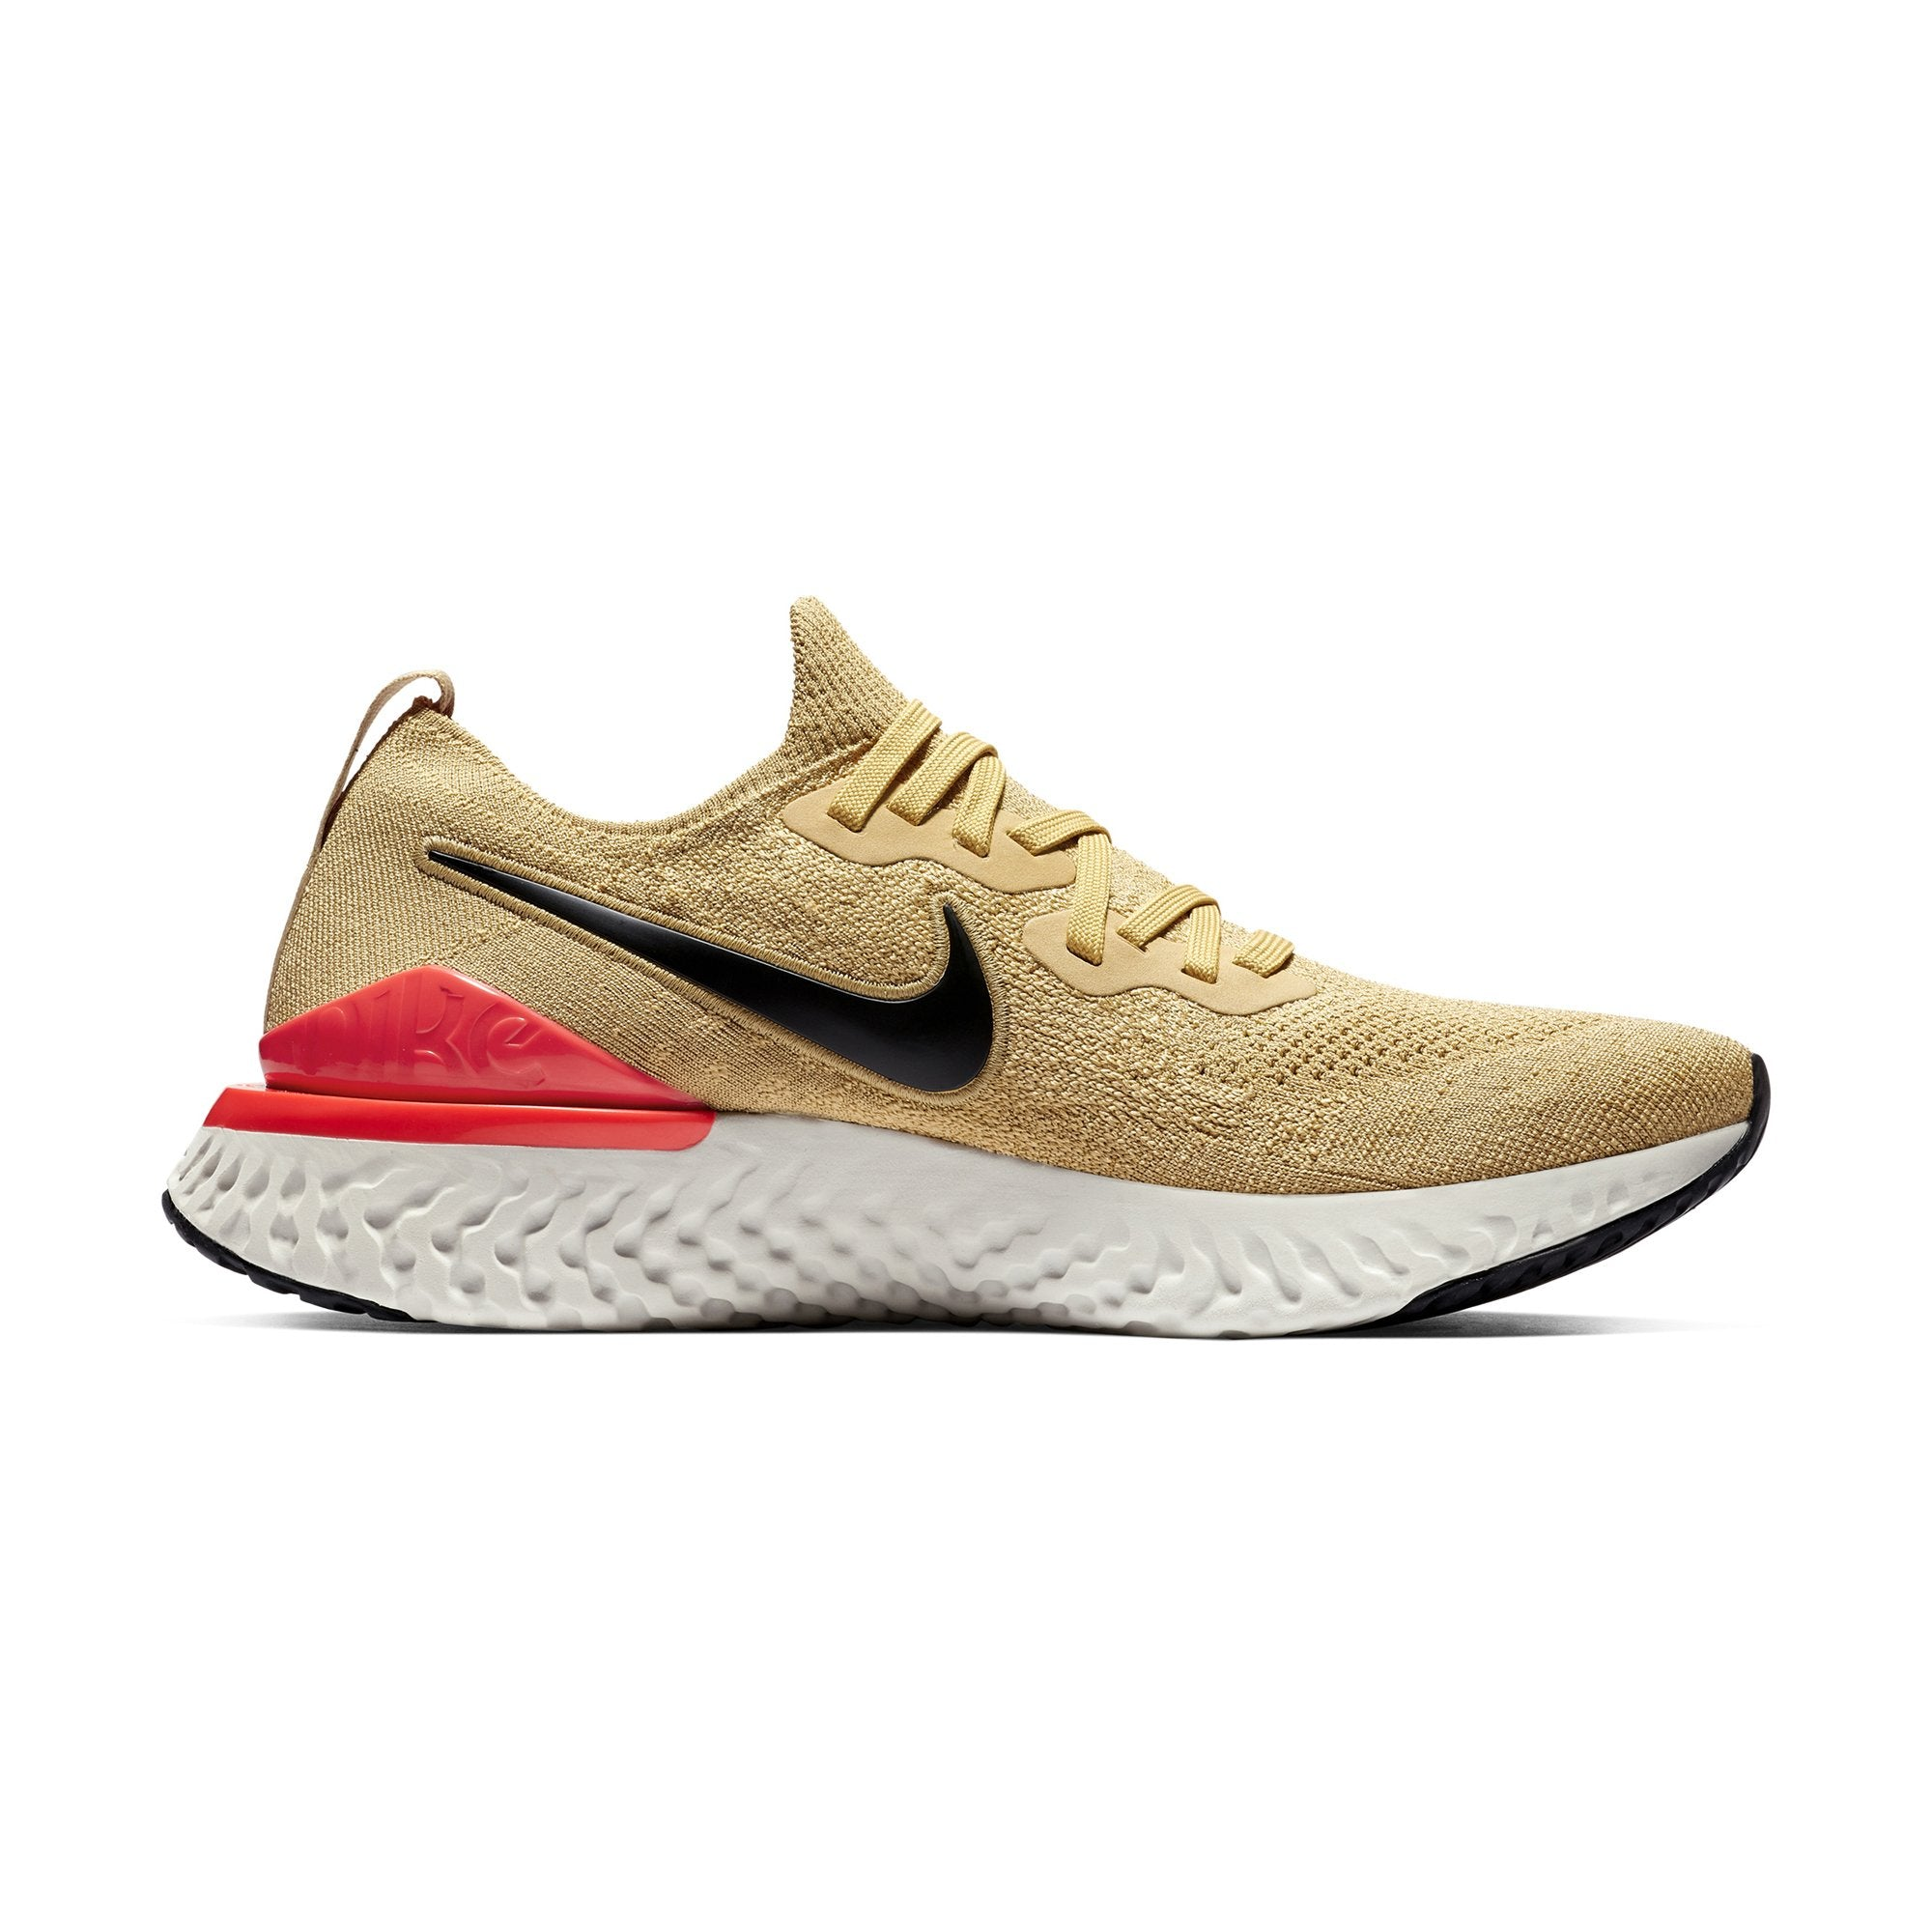 quality design 35d8d 911c9 Buy Nike Men Epic React Flyknit 2 Running Shoes, Club Gold Black Red Orbit  Online in Singapore   Royal Sporting House